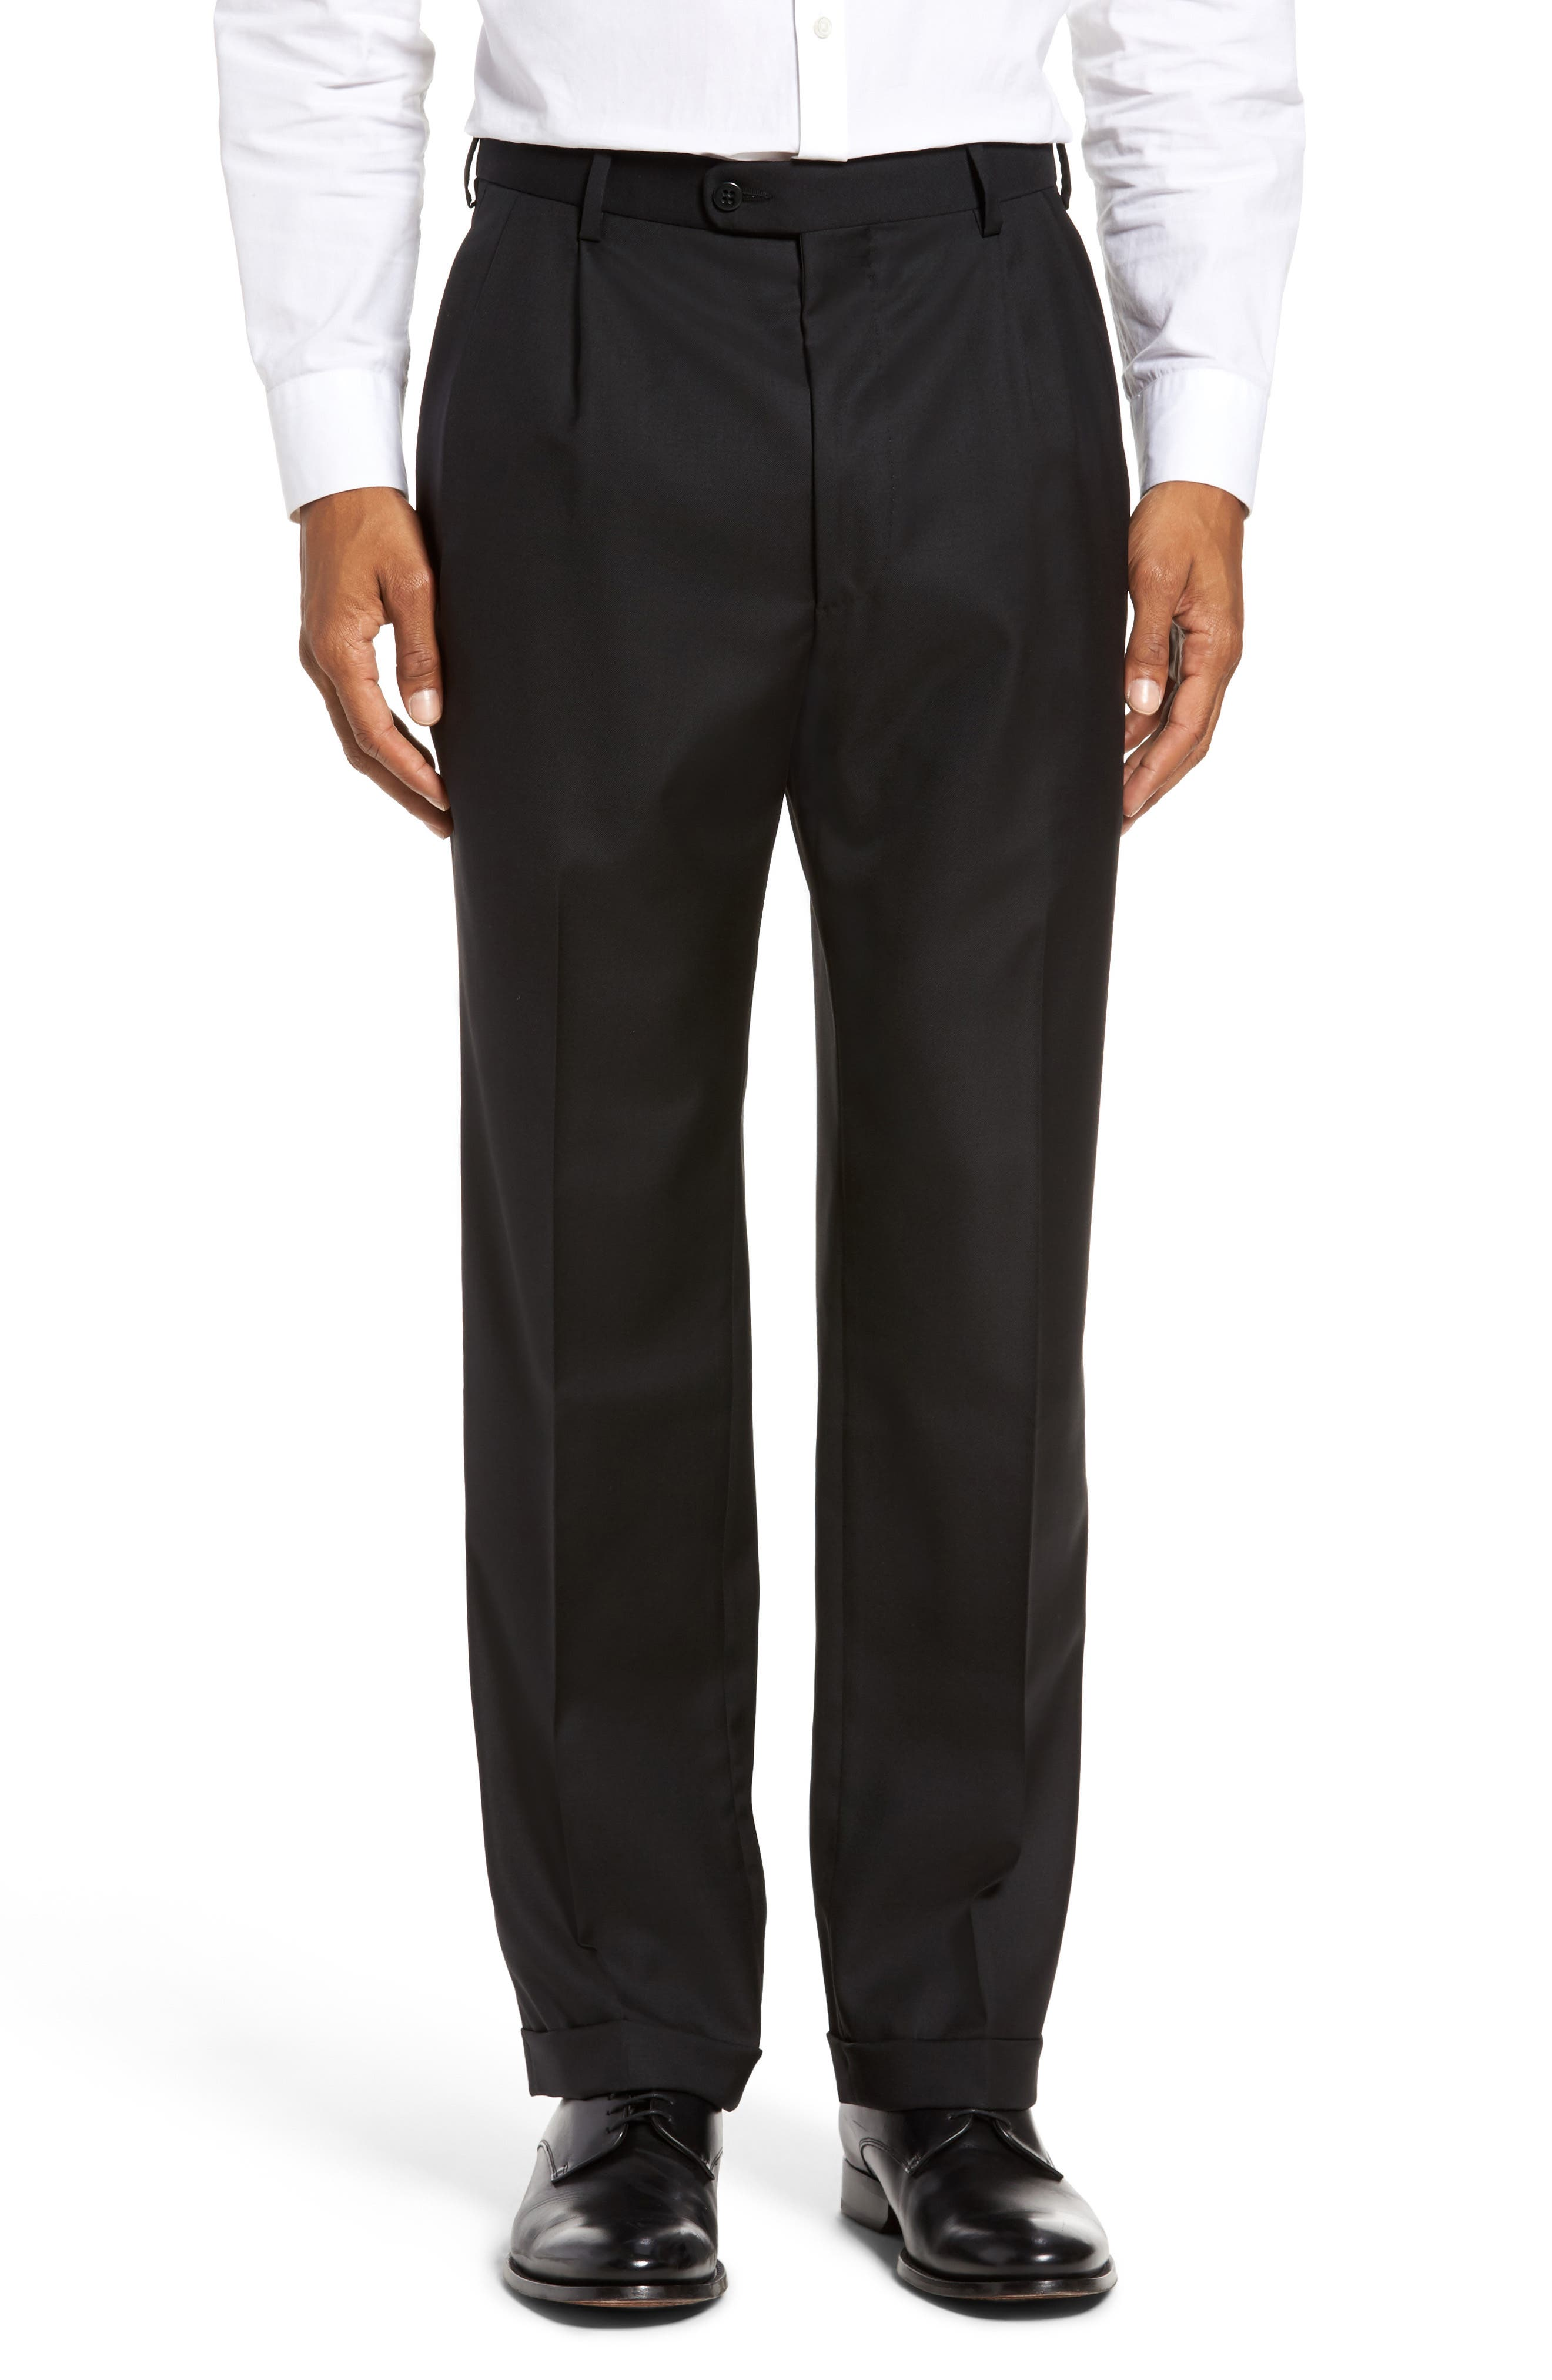 ZANELLA, Bennett Regular Fit Pleated Trousers, Main thumbnail 1, color, BLACK